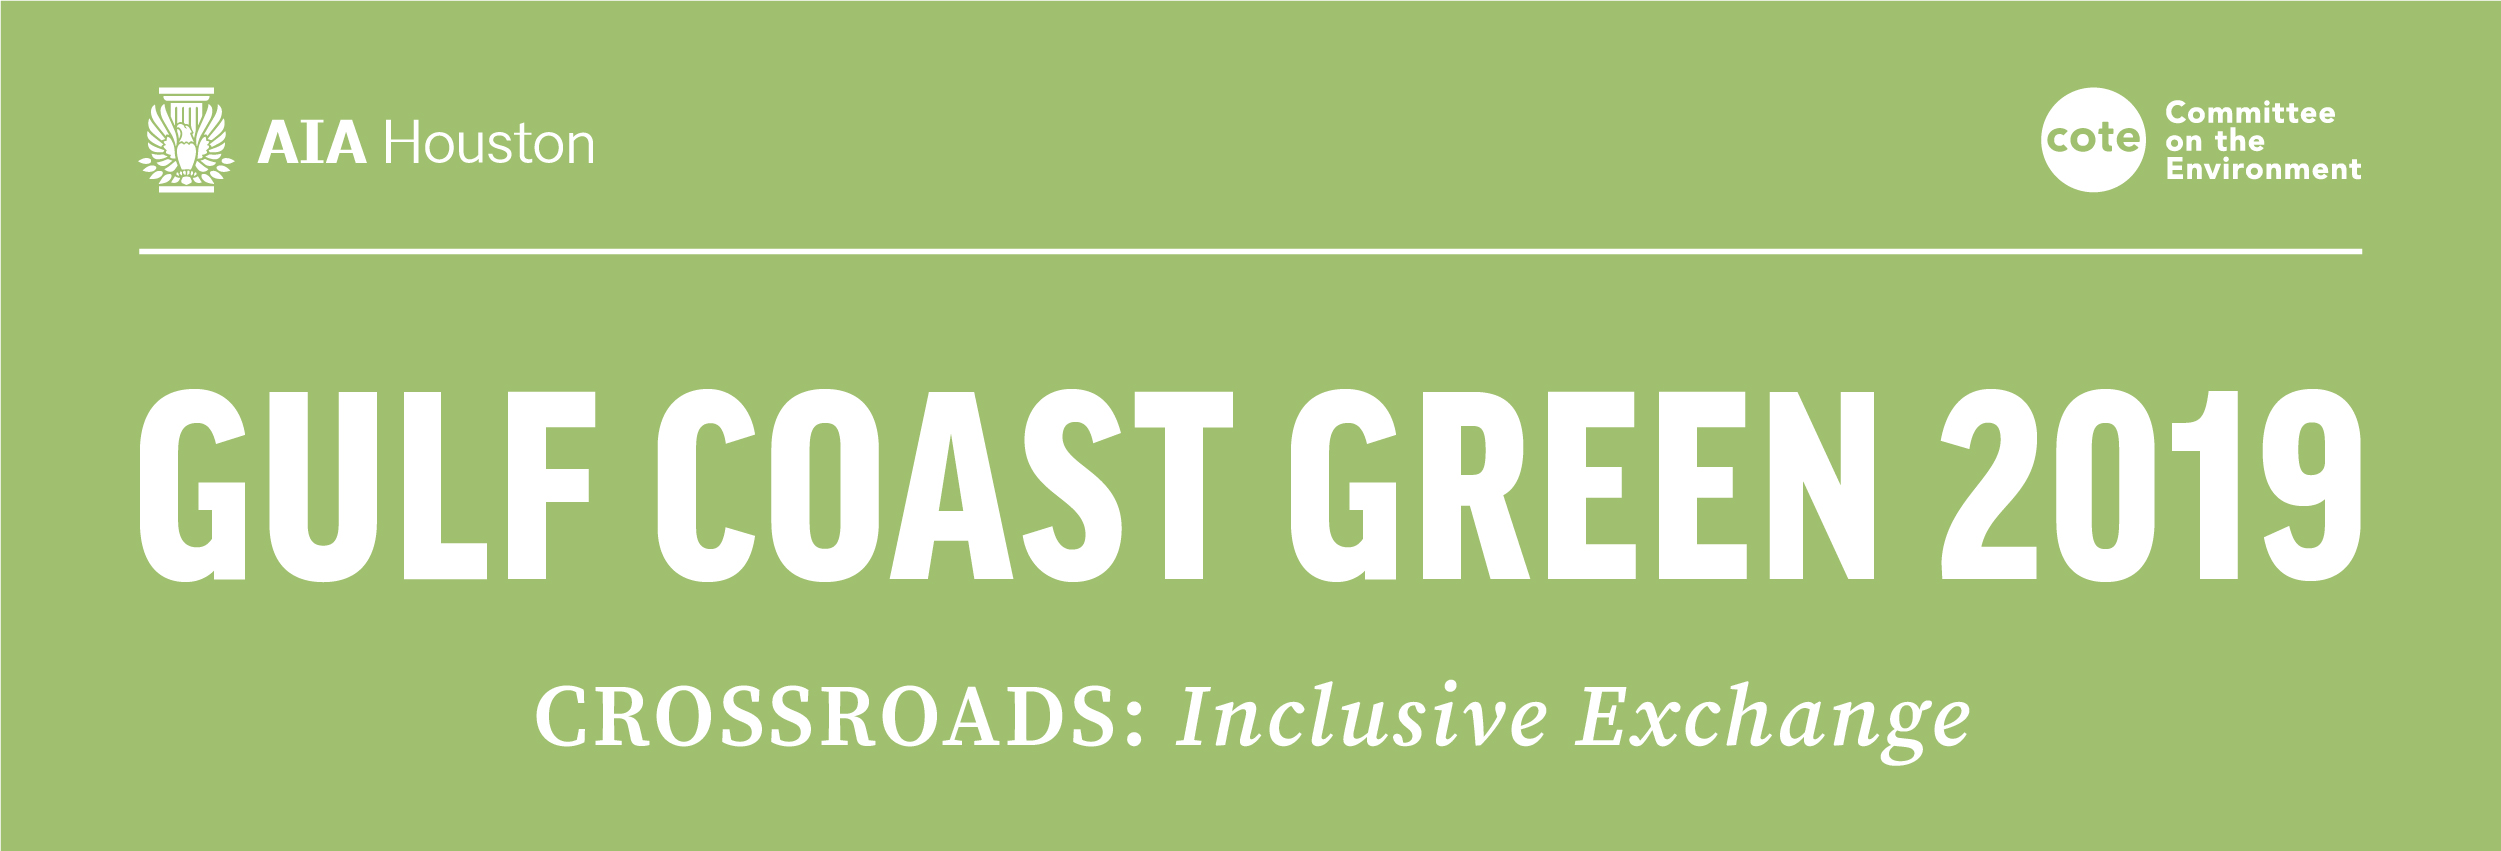 Gulf Coast Green 2019 Symposium and EXPOnential @ Moody Center for the Arts, Rice University | Houston | Texas | United States